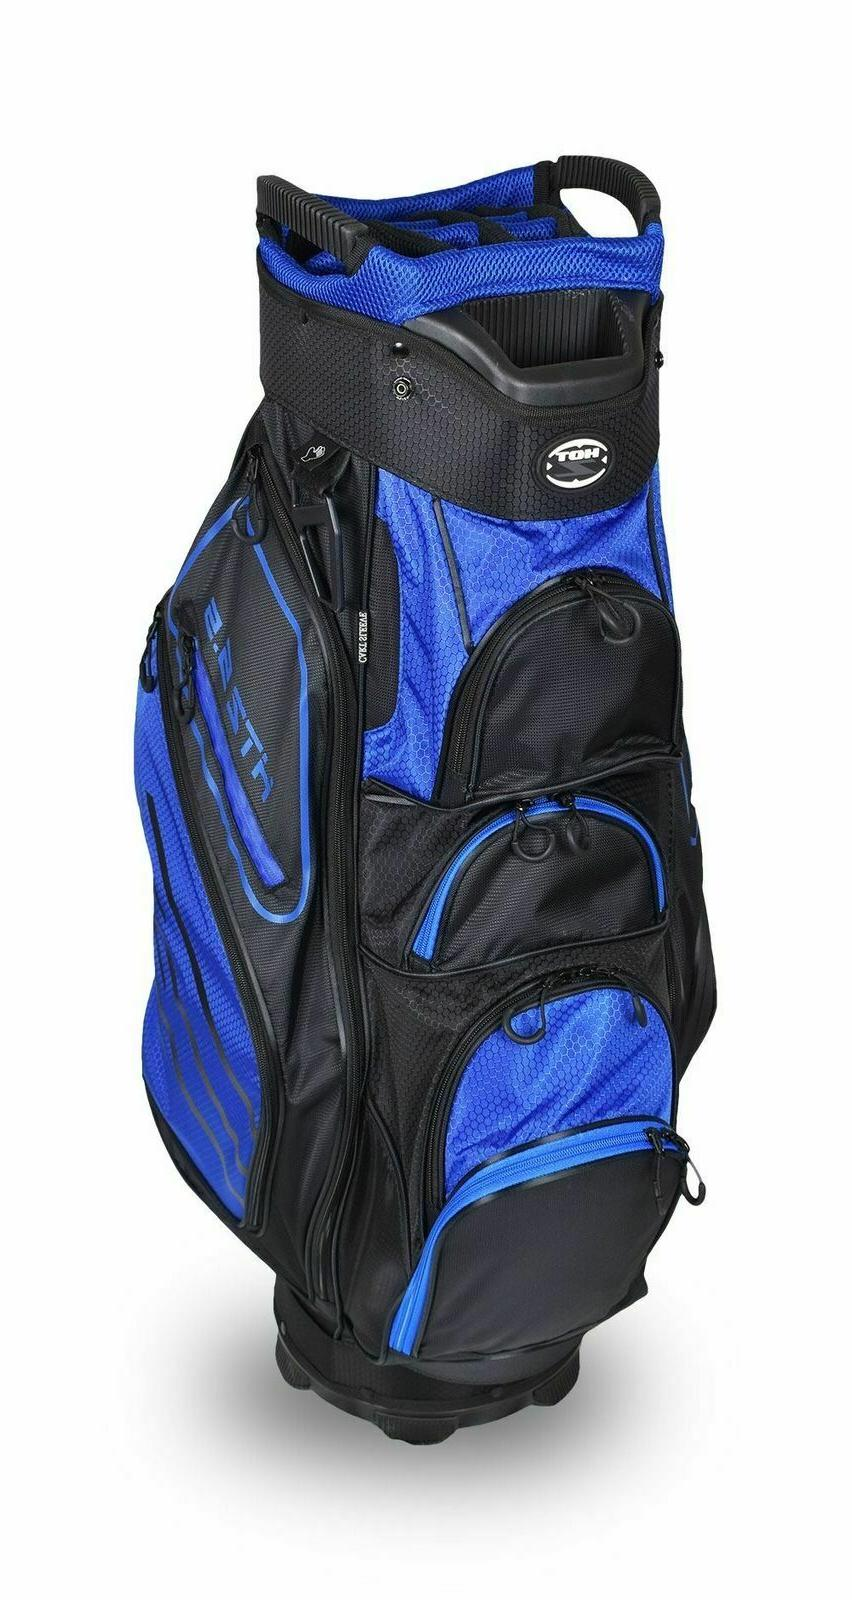 Hot-Z Golf 2018 5.5 Cart Blue/Black Bag